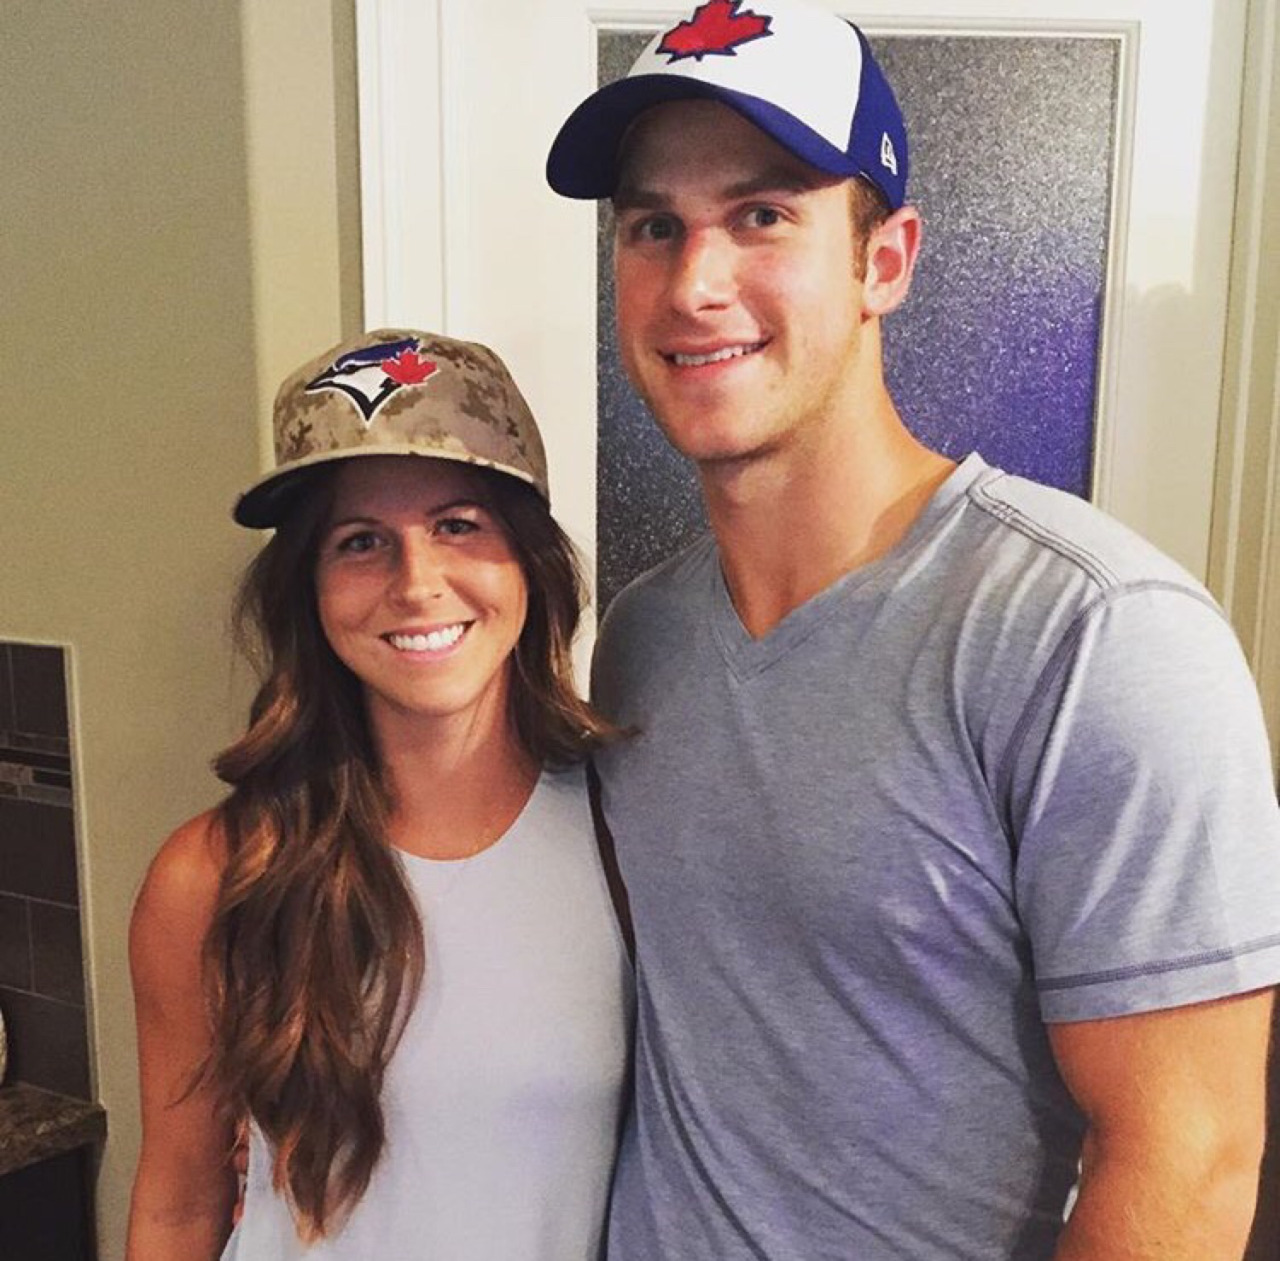 Katie and boyfriend Tyler Fedun. Tyler is a professional hockey player who is a member of the Buffalo Sabres system.   Katie and Tyler live together in upstate New York.